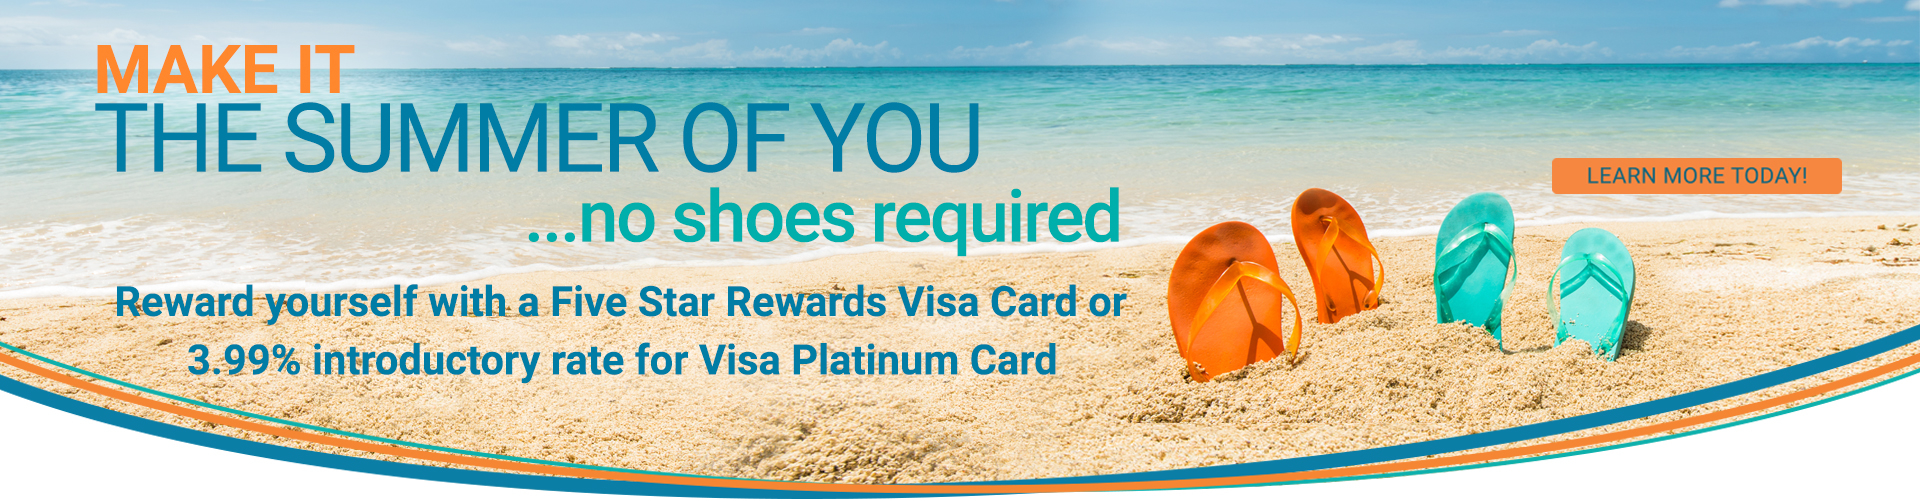 Make It The Summer Of You - Visa Card